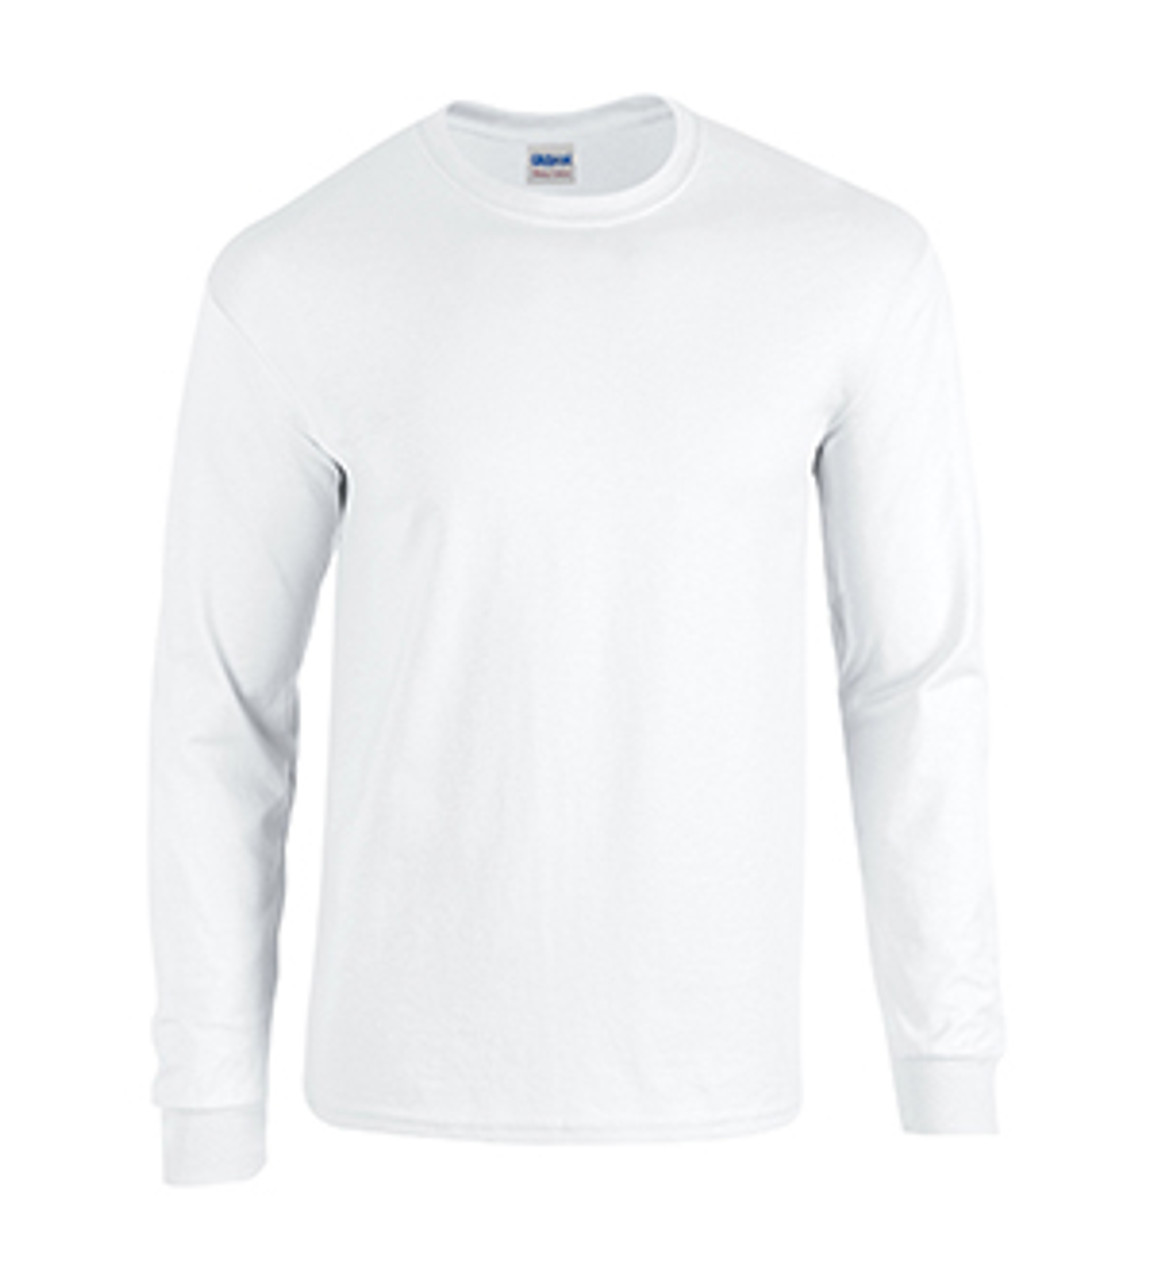 debc97c1785d ... 5400 - White. Previous. 5400 GILDAN HEAVY COTTON ADULT LONG SLEEVE T- SHIRT ...